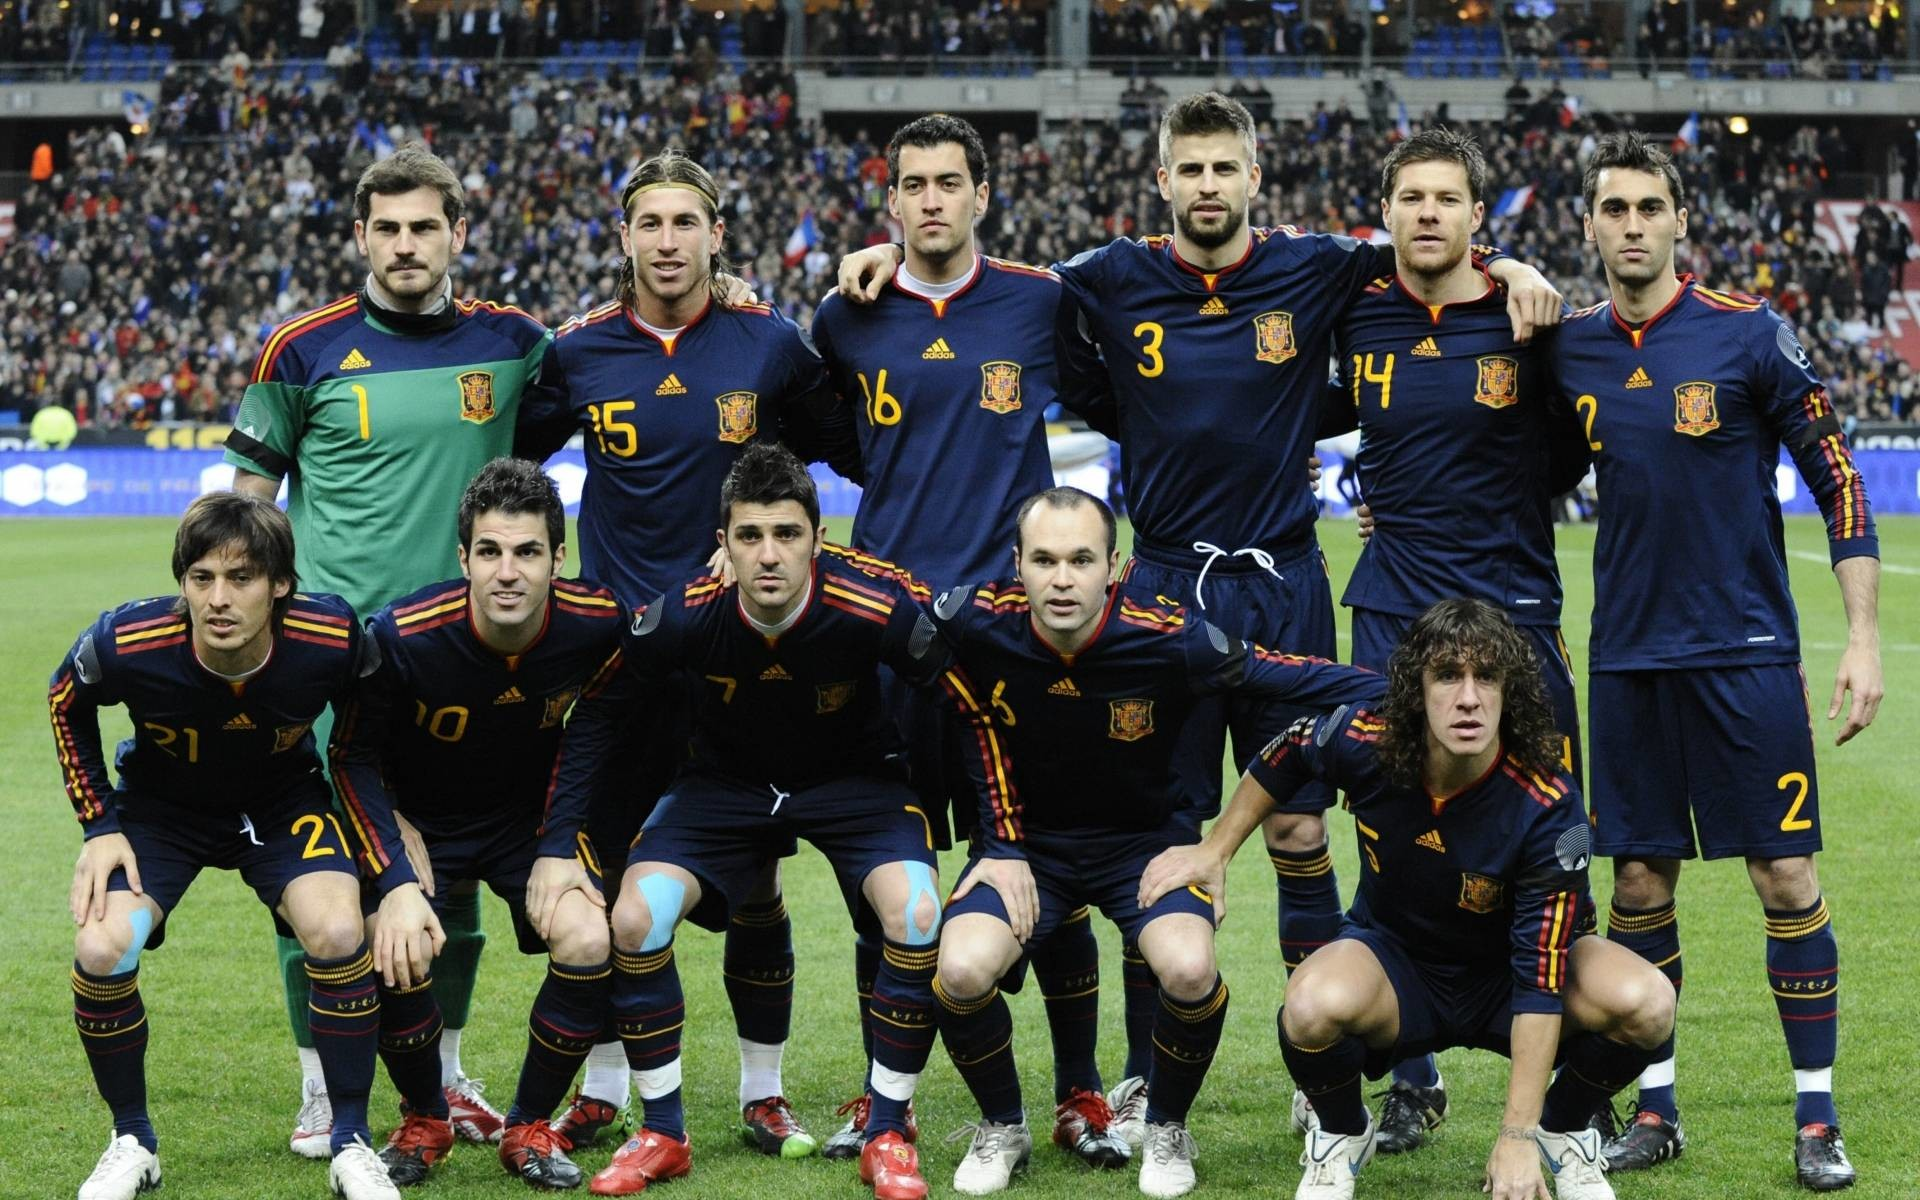 Spain Football Team Squad Wallpaper – Football HD Wallpapers